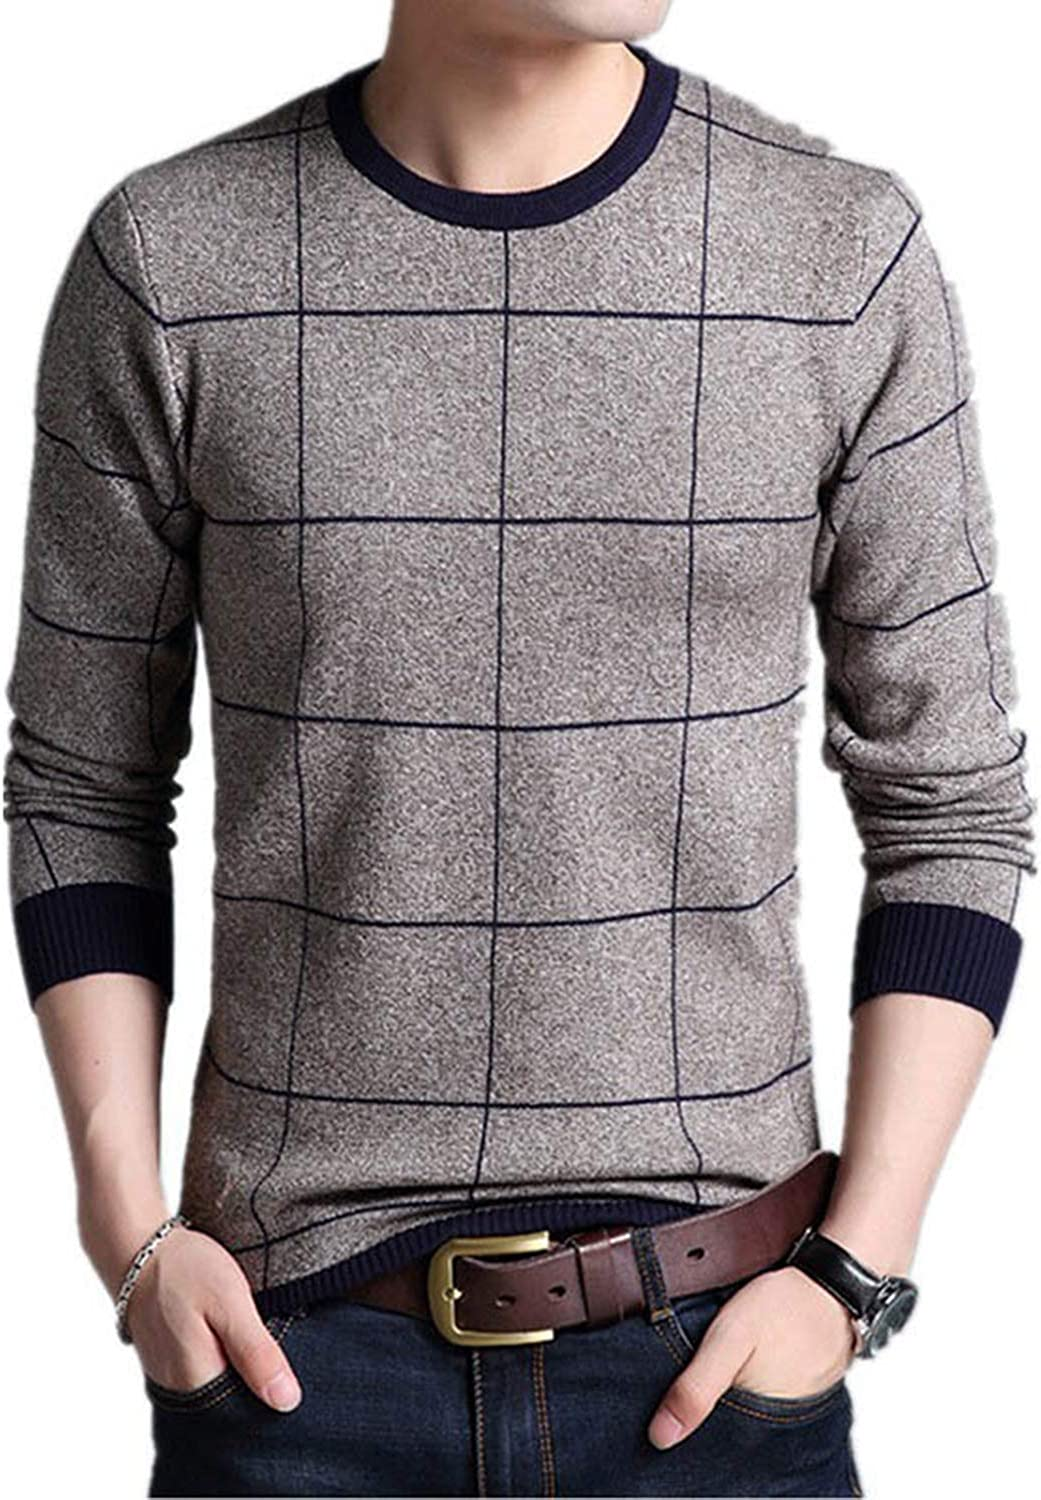 Stevenurr fashion-hoodies Thick Warm Sweater Men O Neck Slim Knitted Pullover Cotton Knitwear Pull Homme